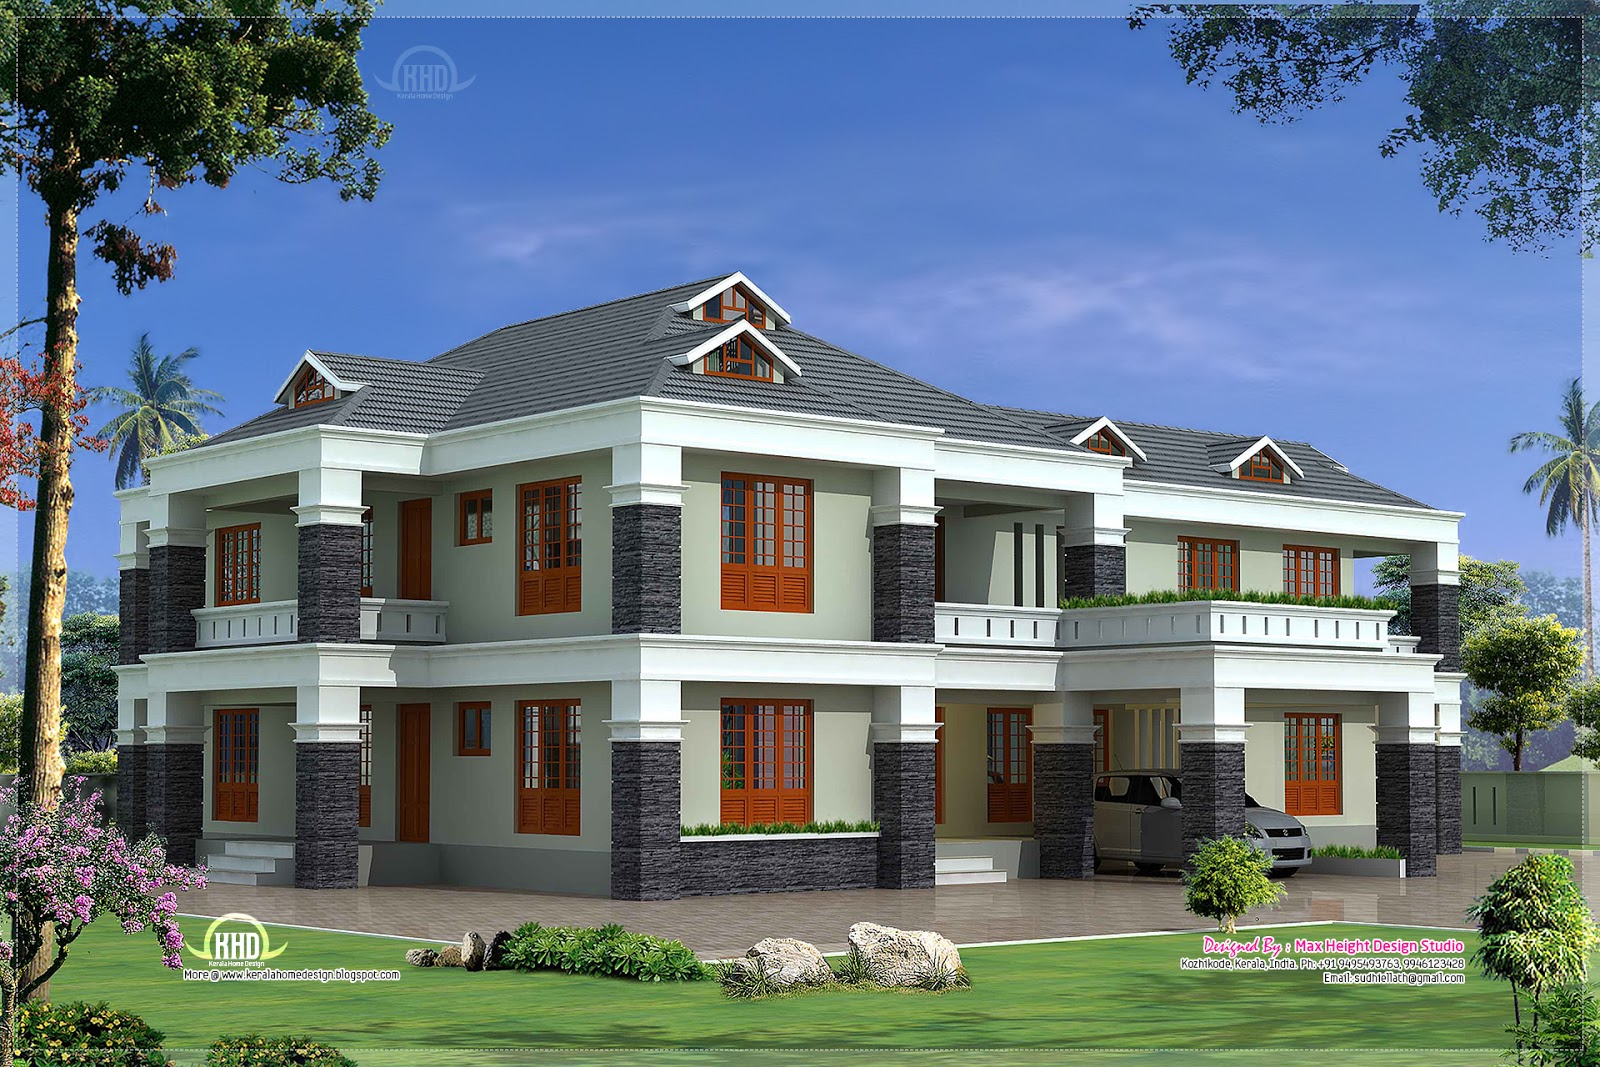 4000 luxury villa exterior kerala home design for Luxury mansion designs